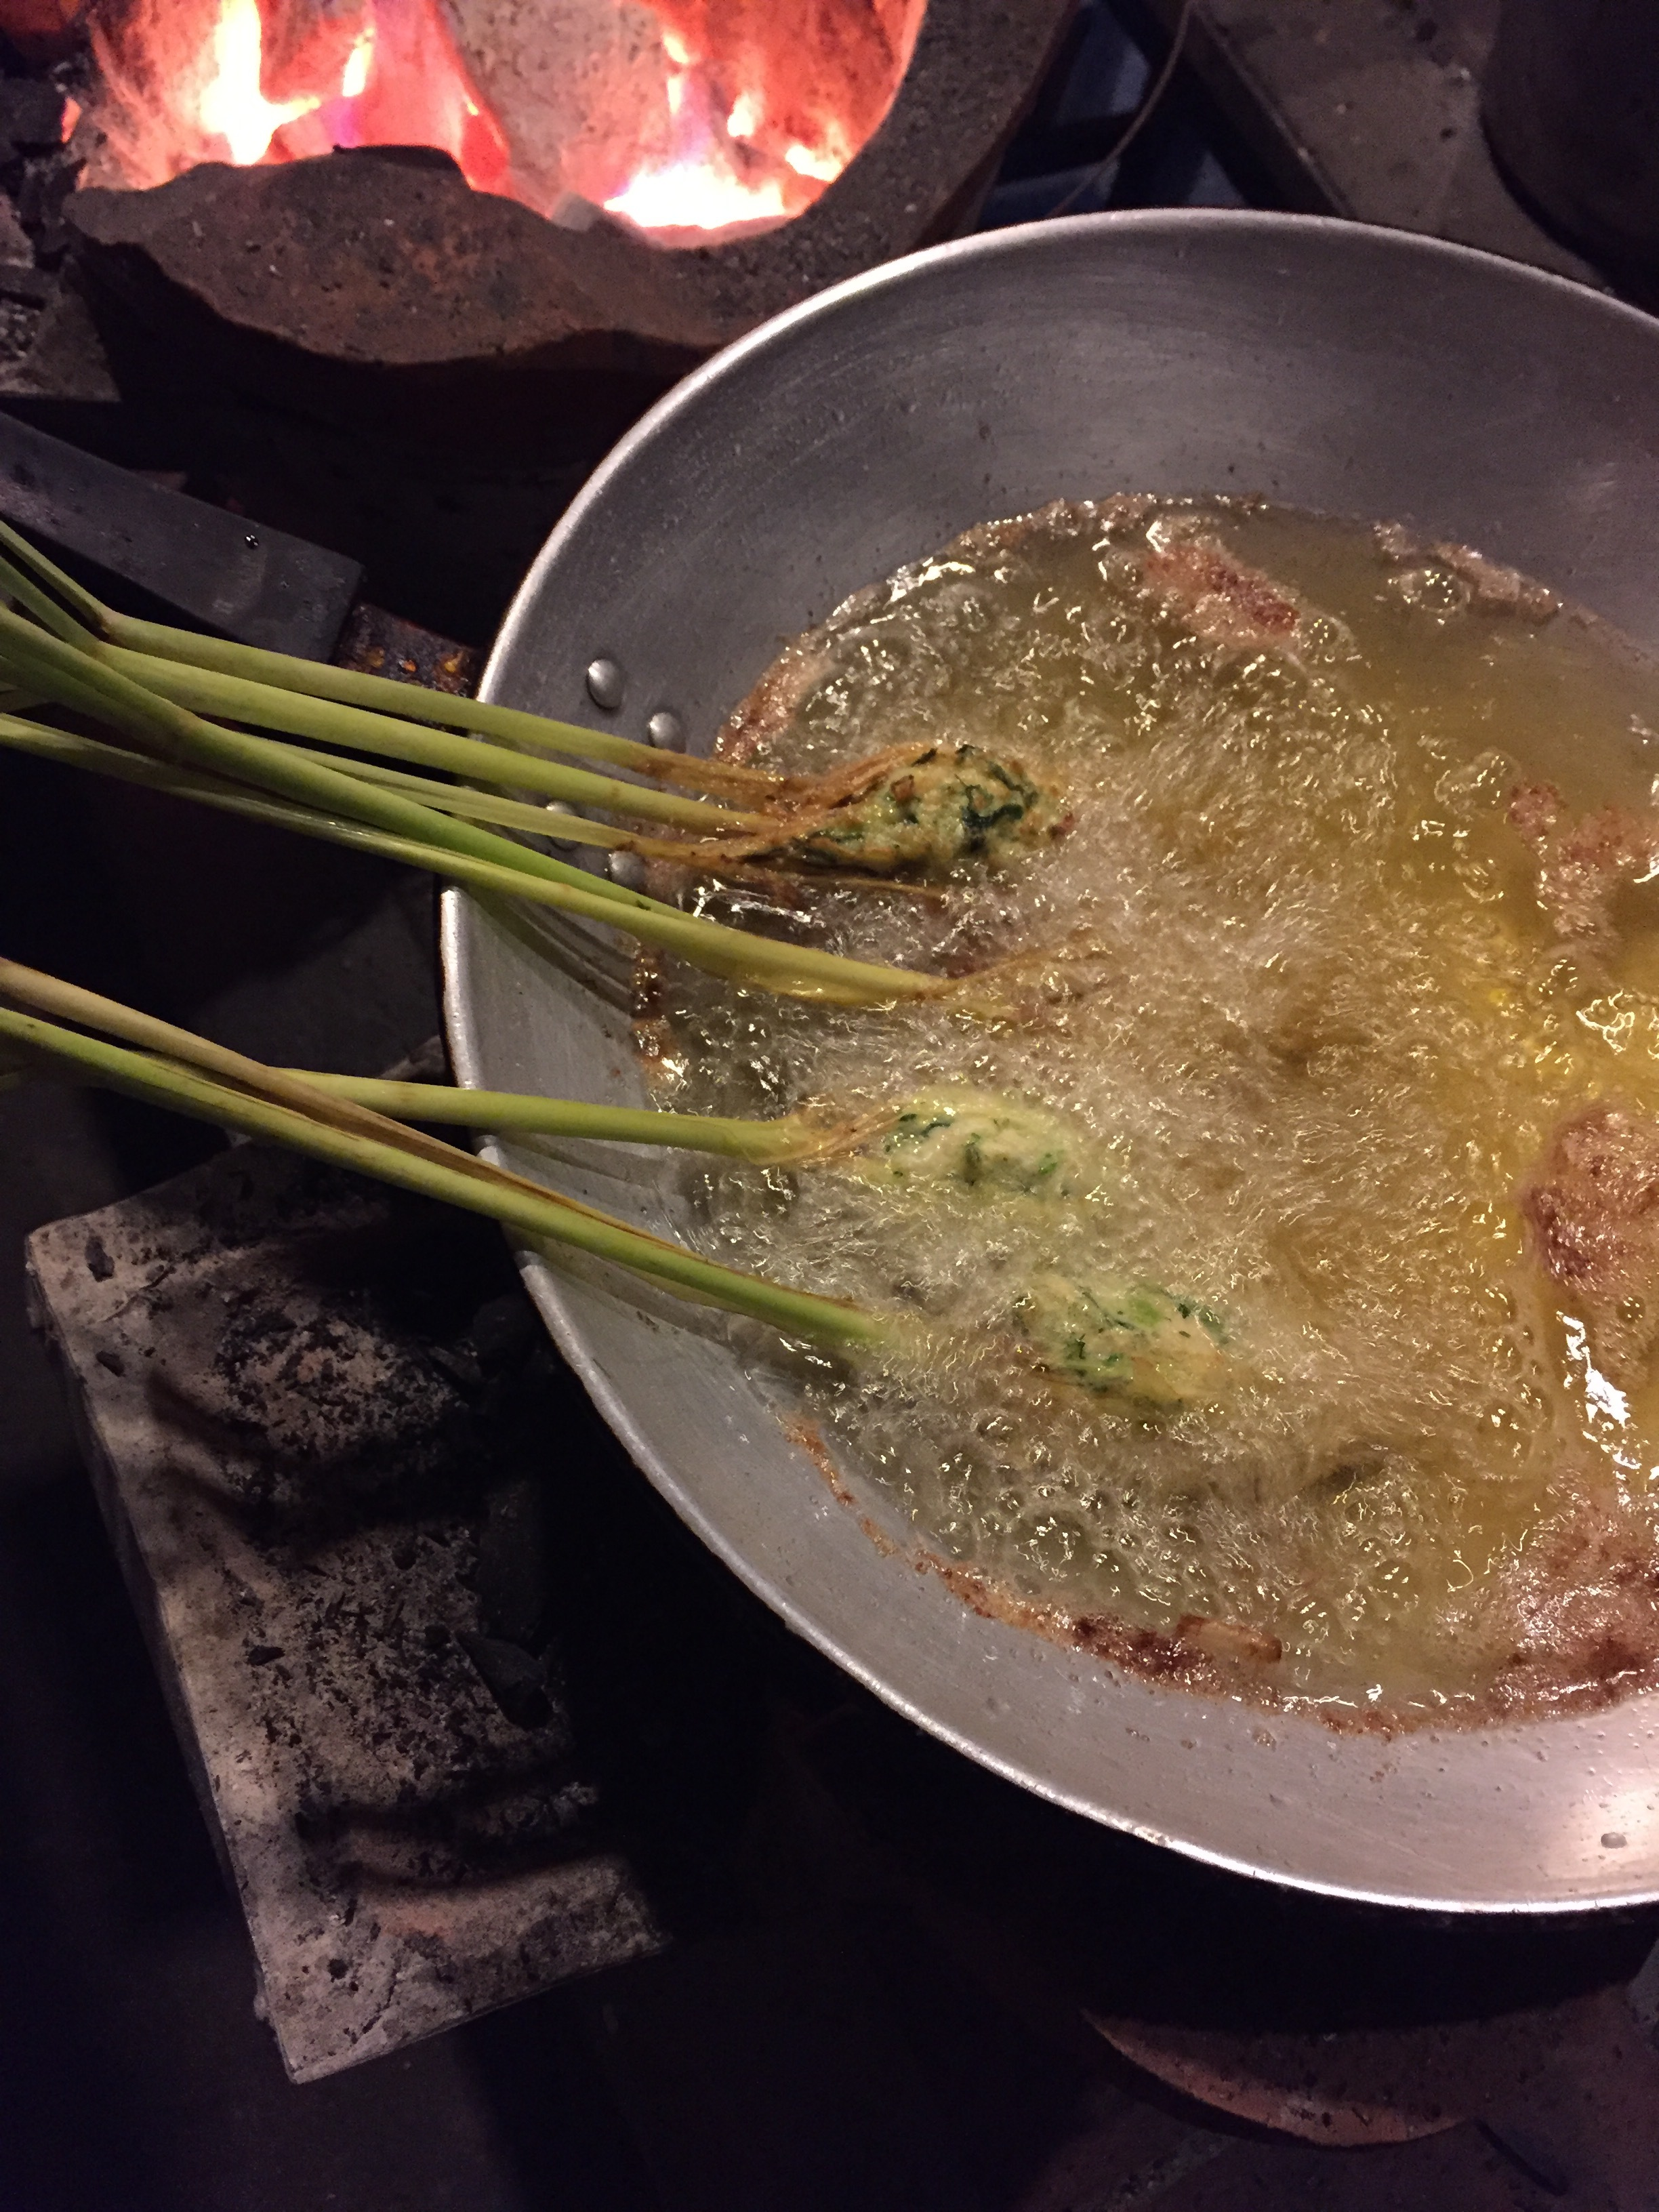 Frying our lemongrass stuffed with chicken